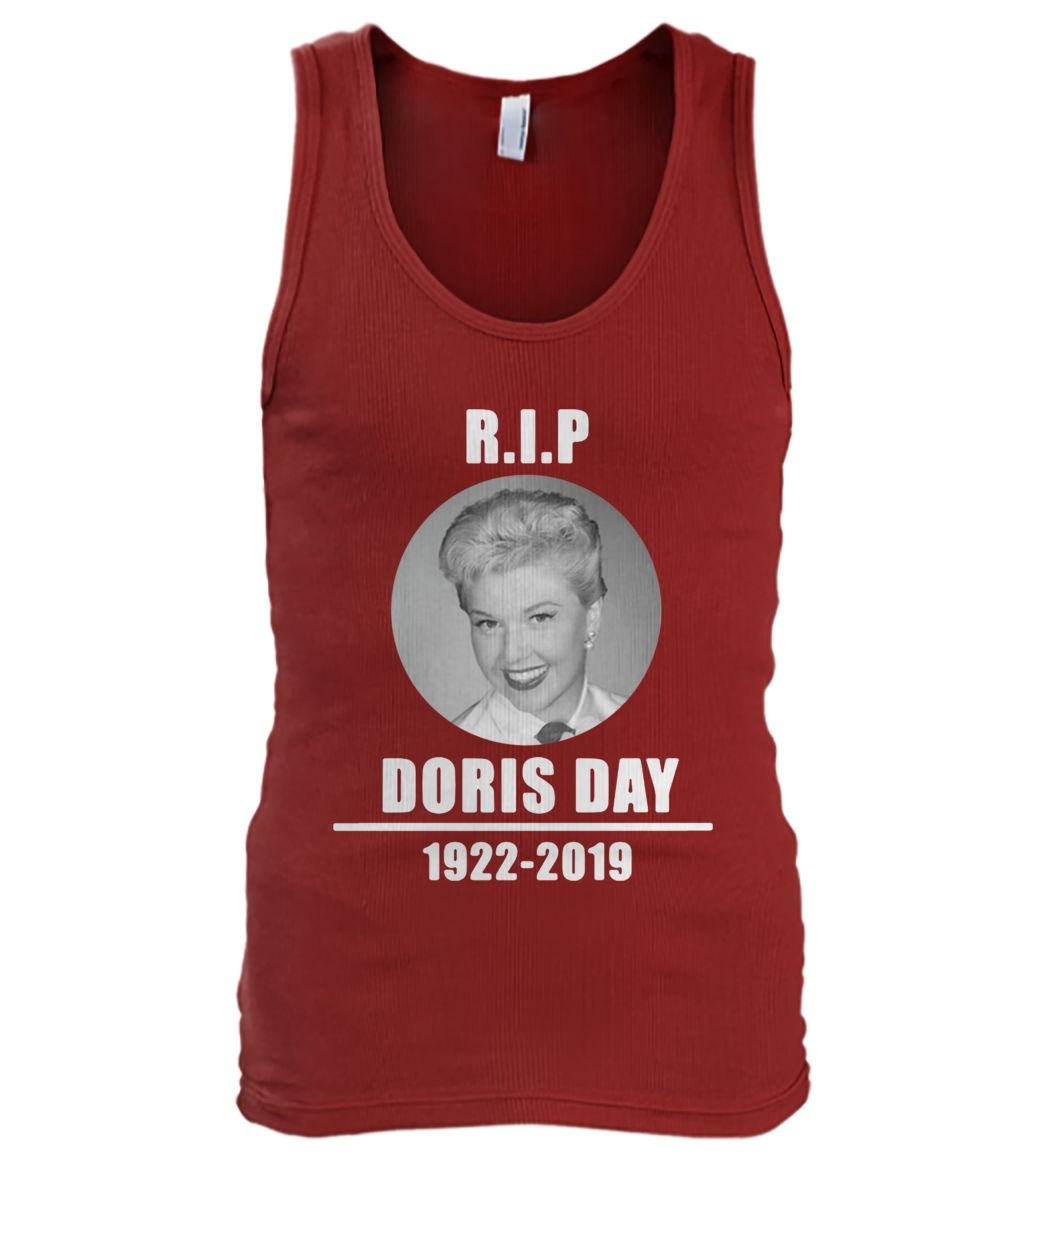 RIP doris day 1922 2019 men's tank top